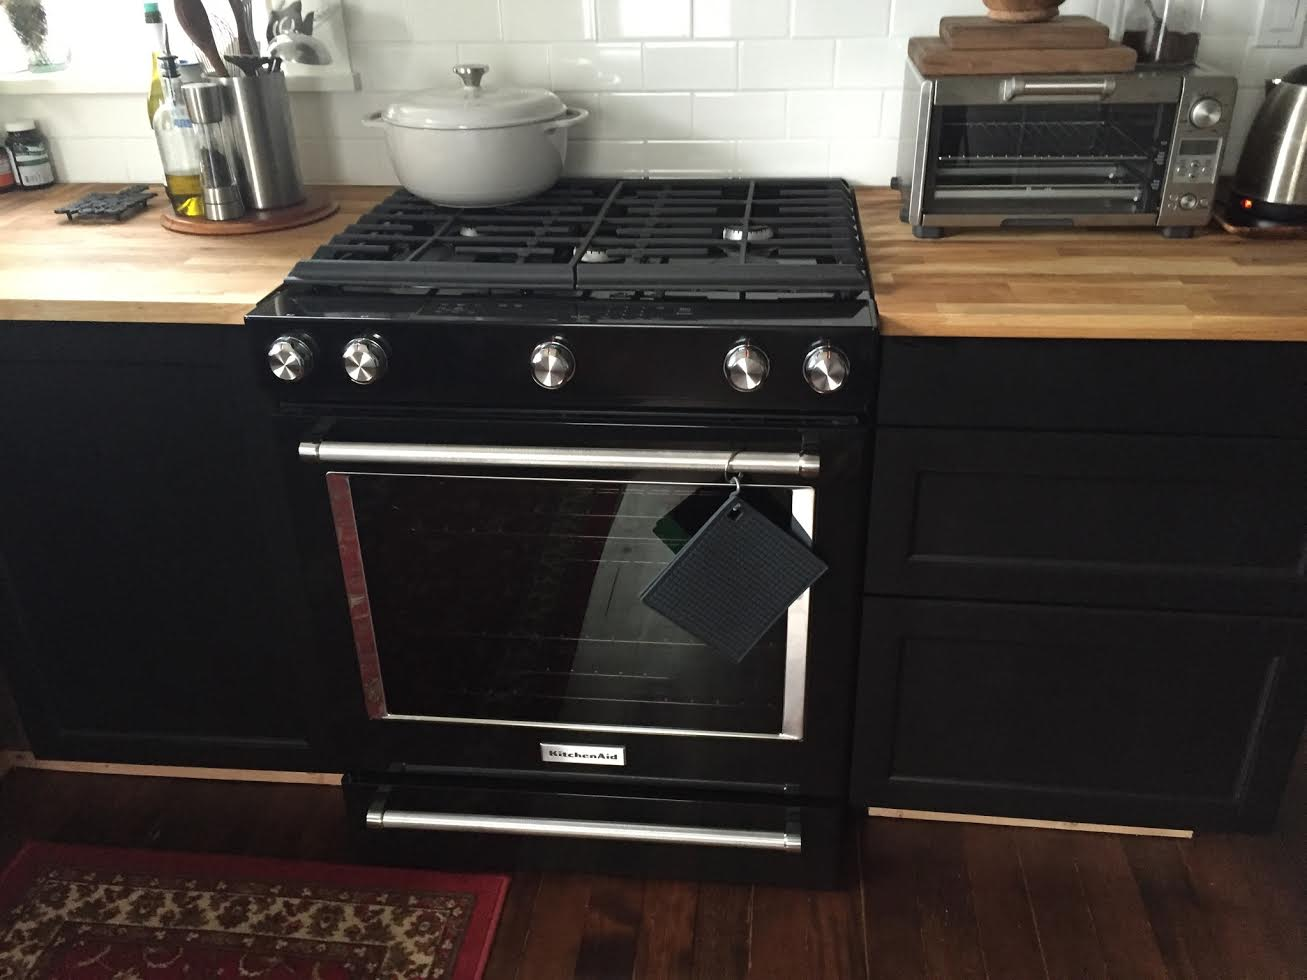 Kitchenaid Black Gas Range KSGG700EBL Rock And Nest 2